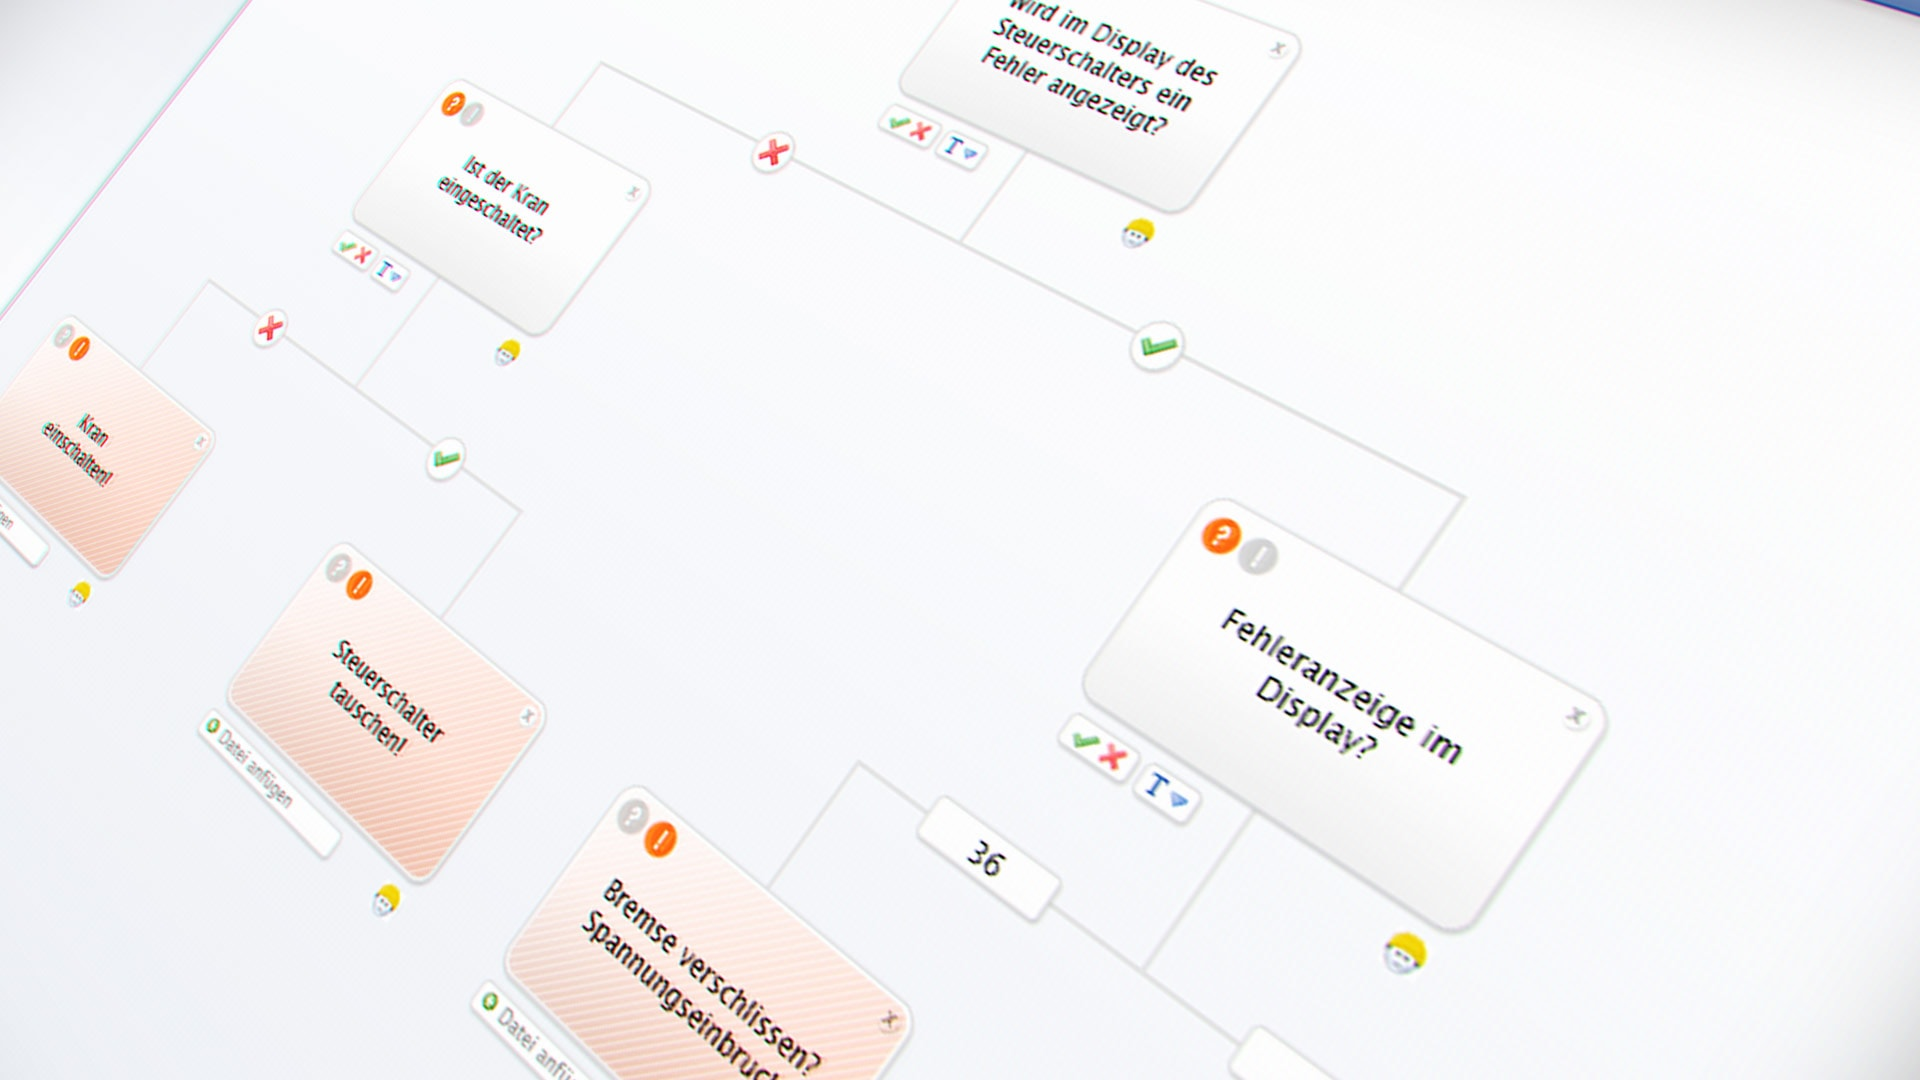 Backend: Ablaufdiagramm Diagnose-Software Demag Troubleshooting